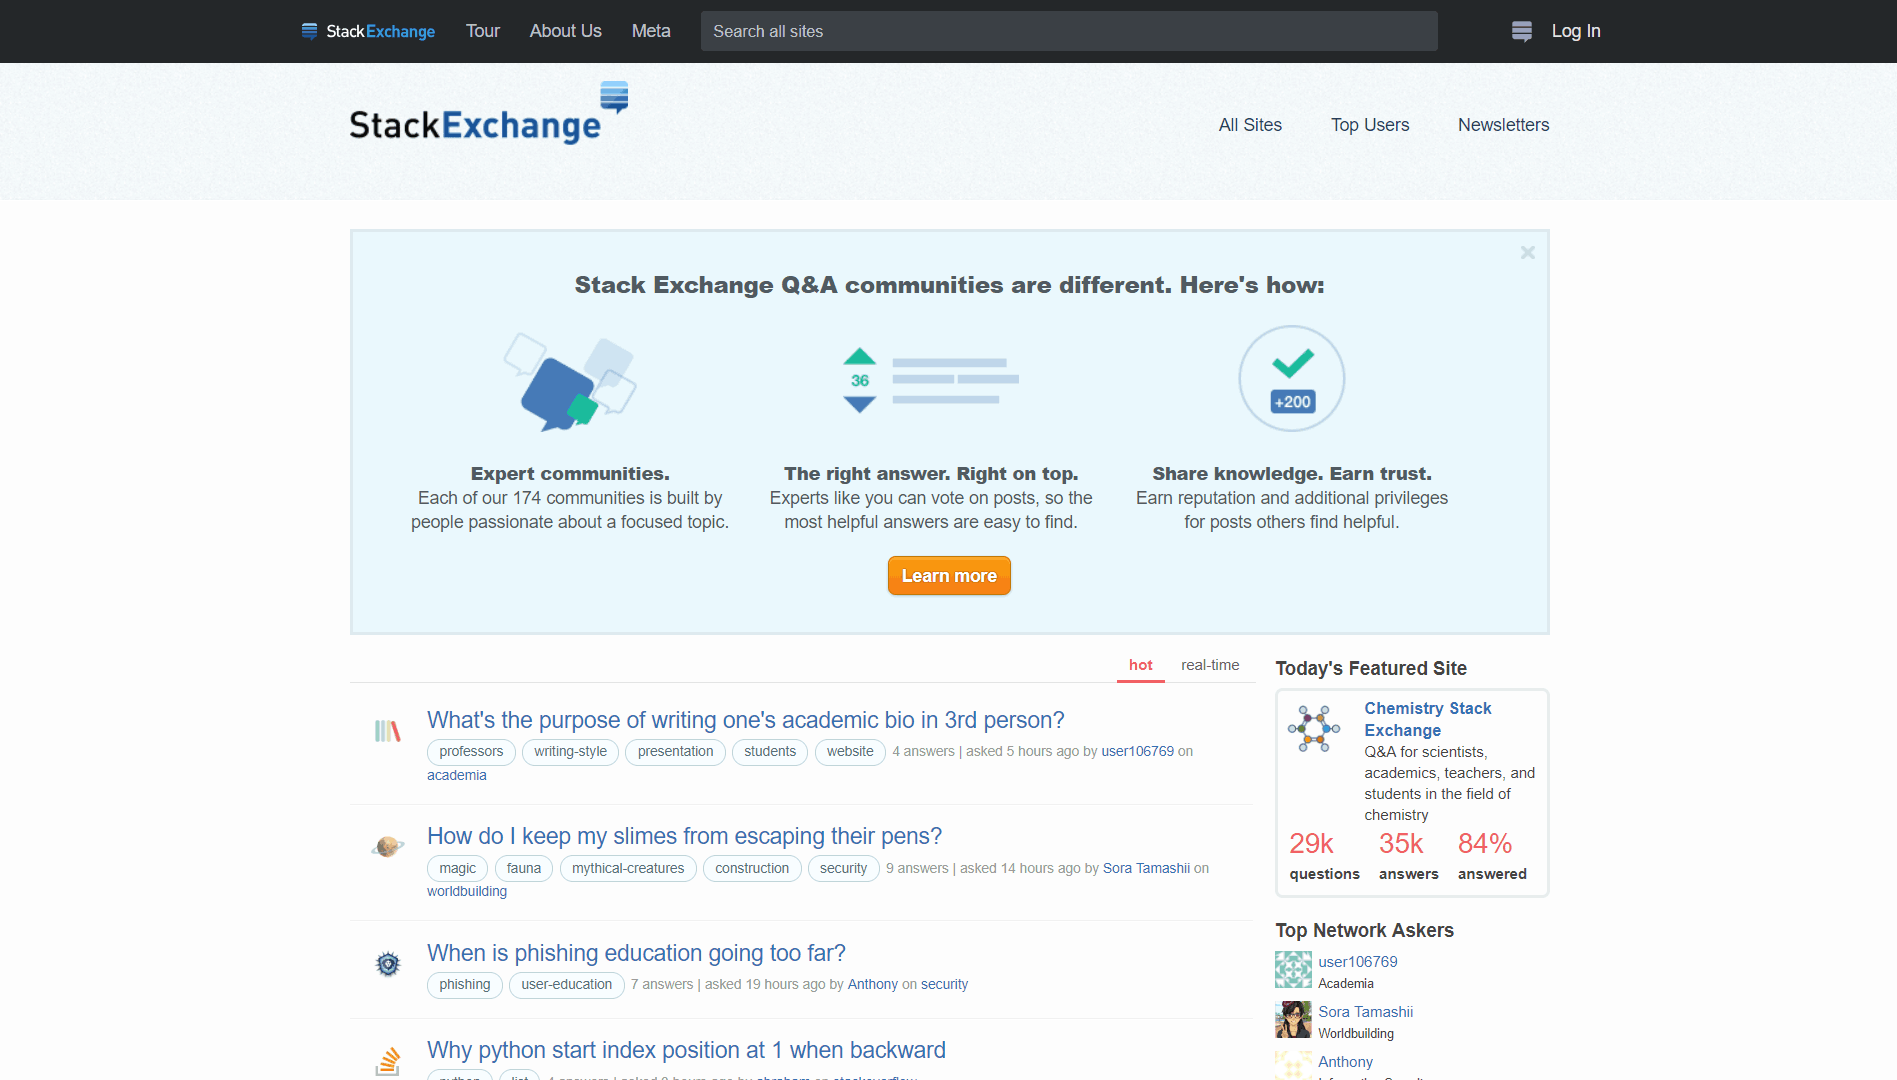 The homepage of Stack Exchange.